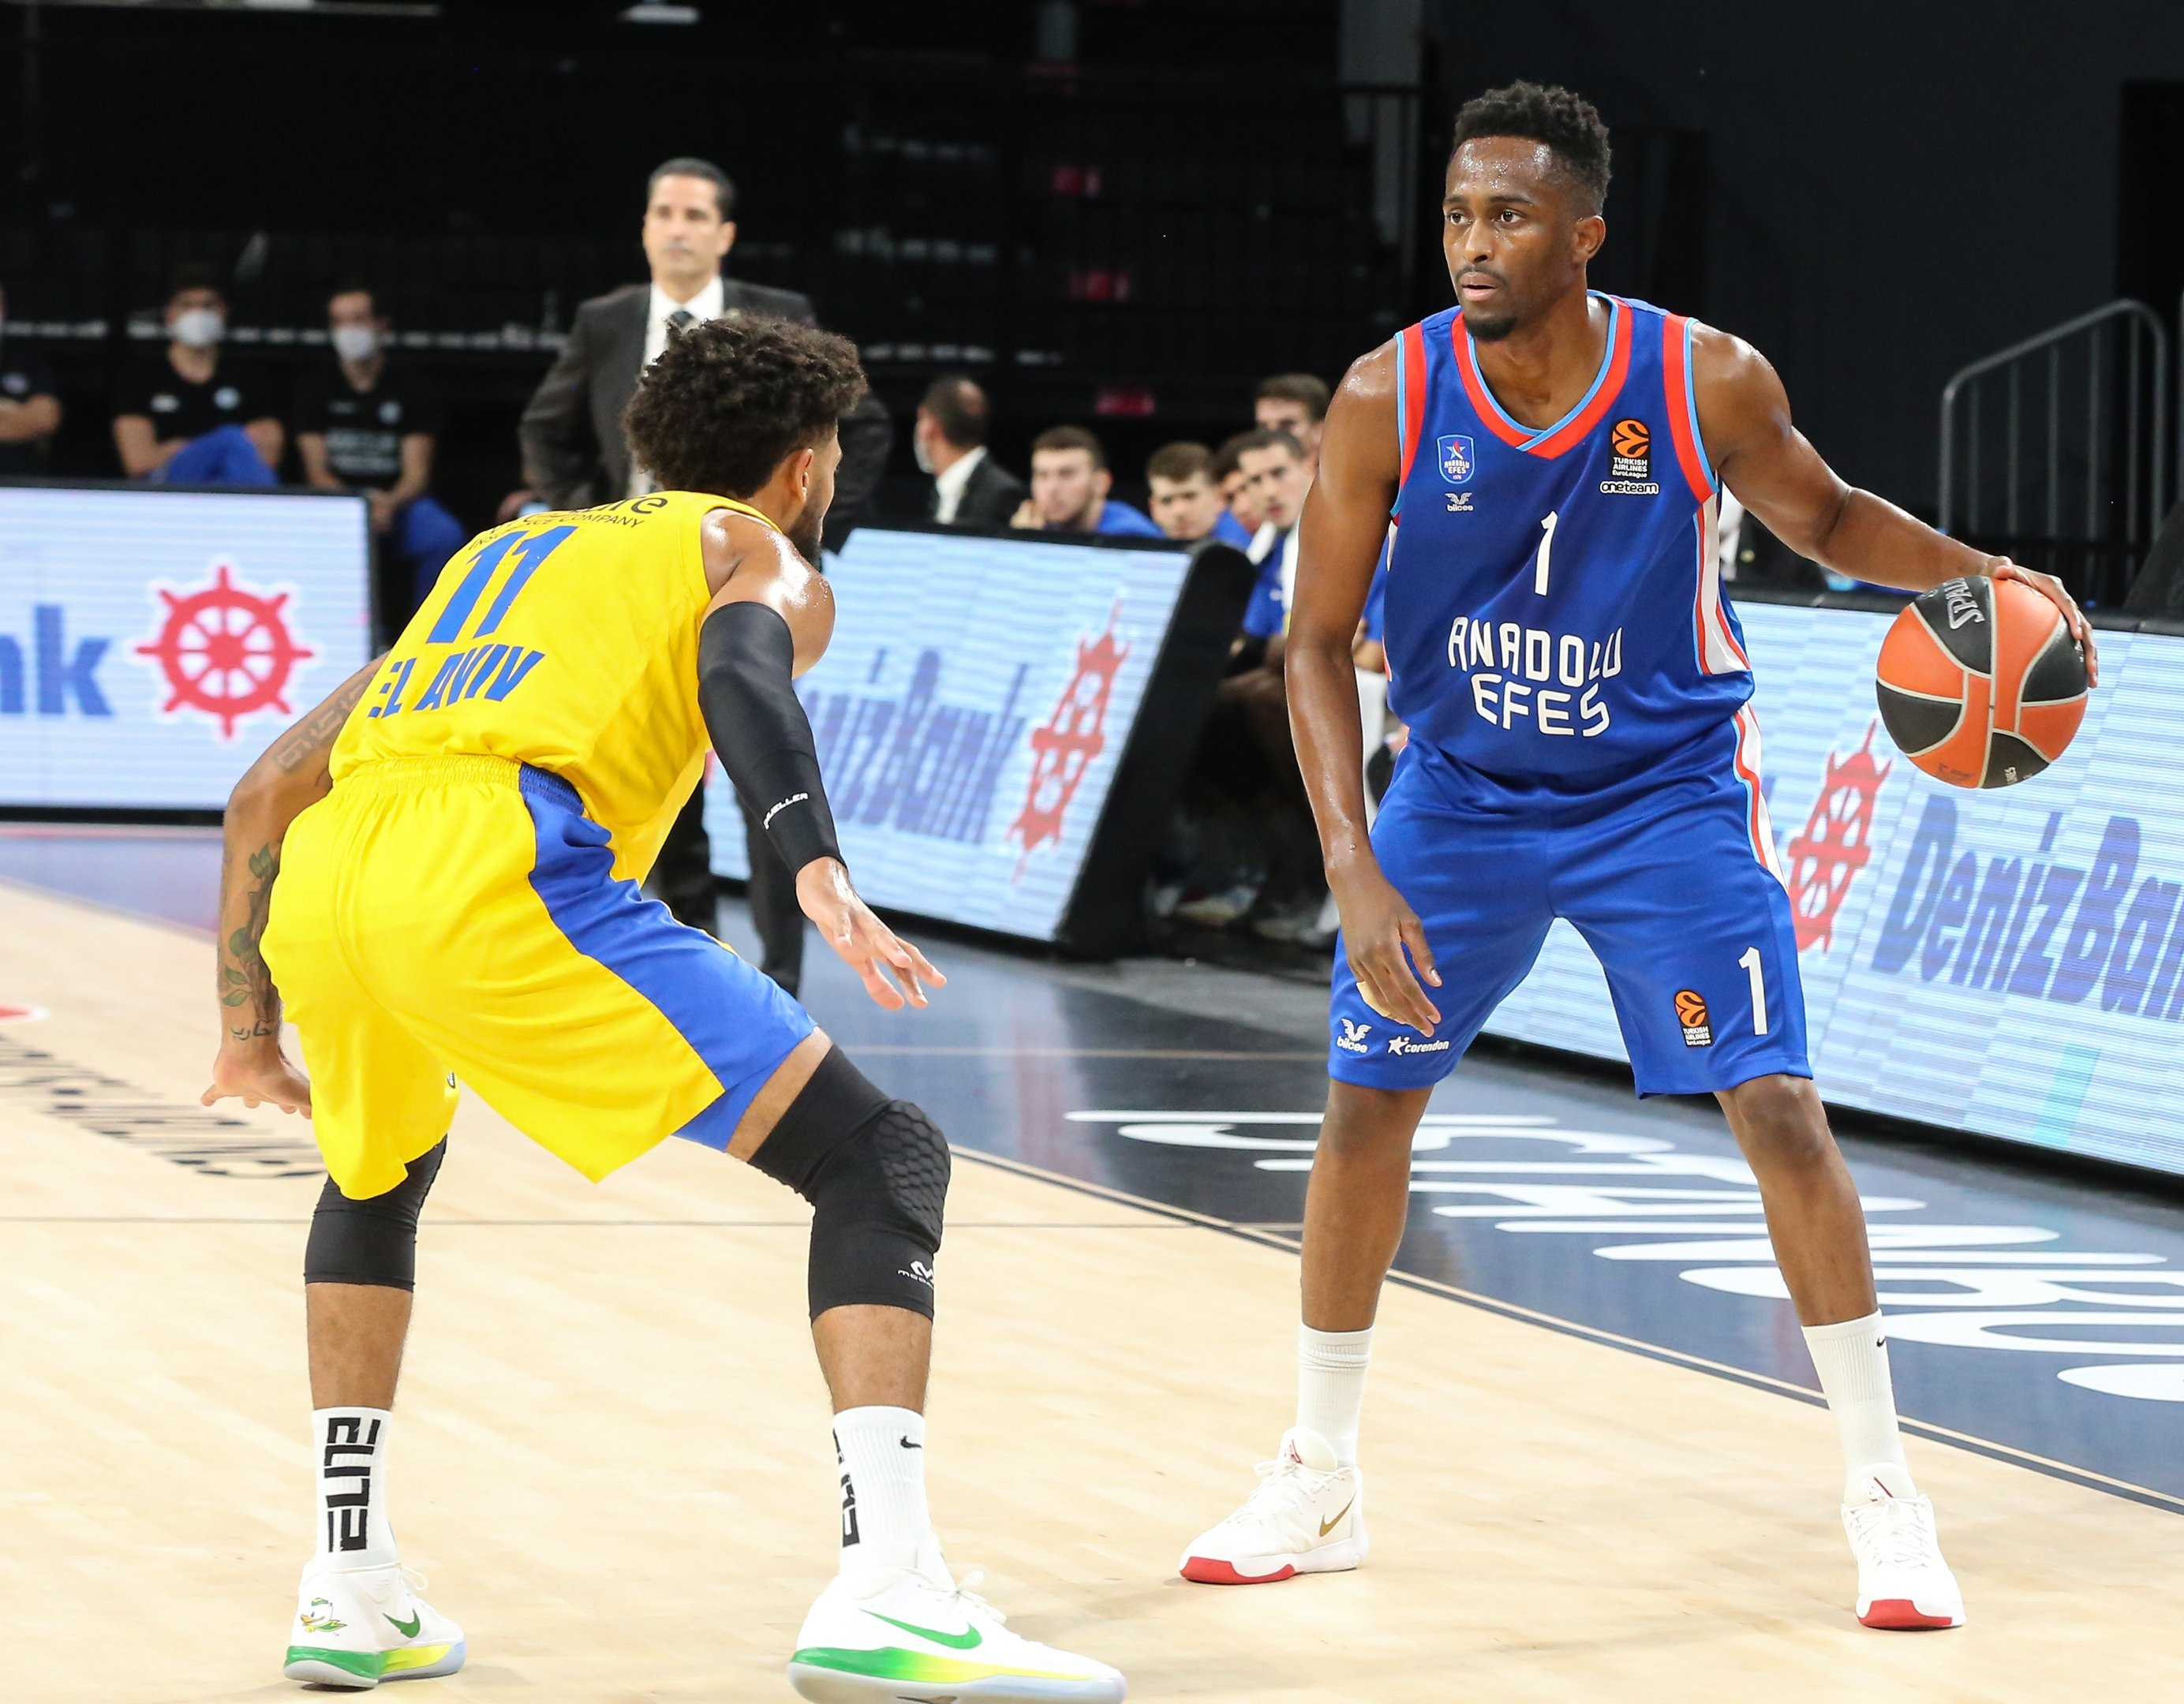 Beaubois leads Anadolu Efes to beat Maccabi Tel Aviv 91-89 in EuroLeague | Daily Sabah